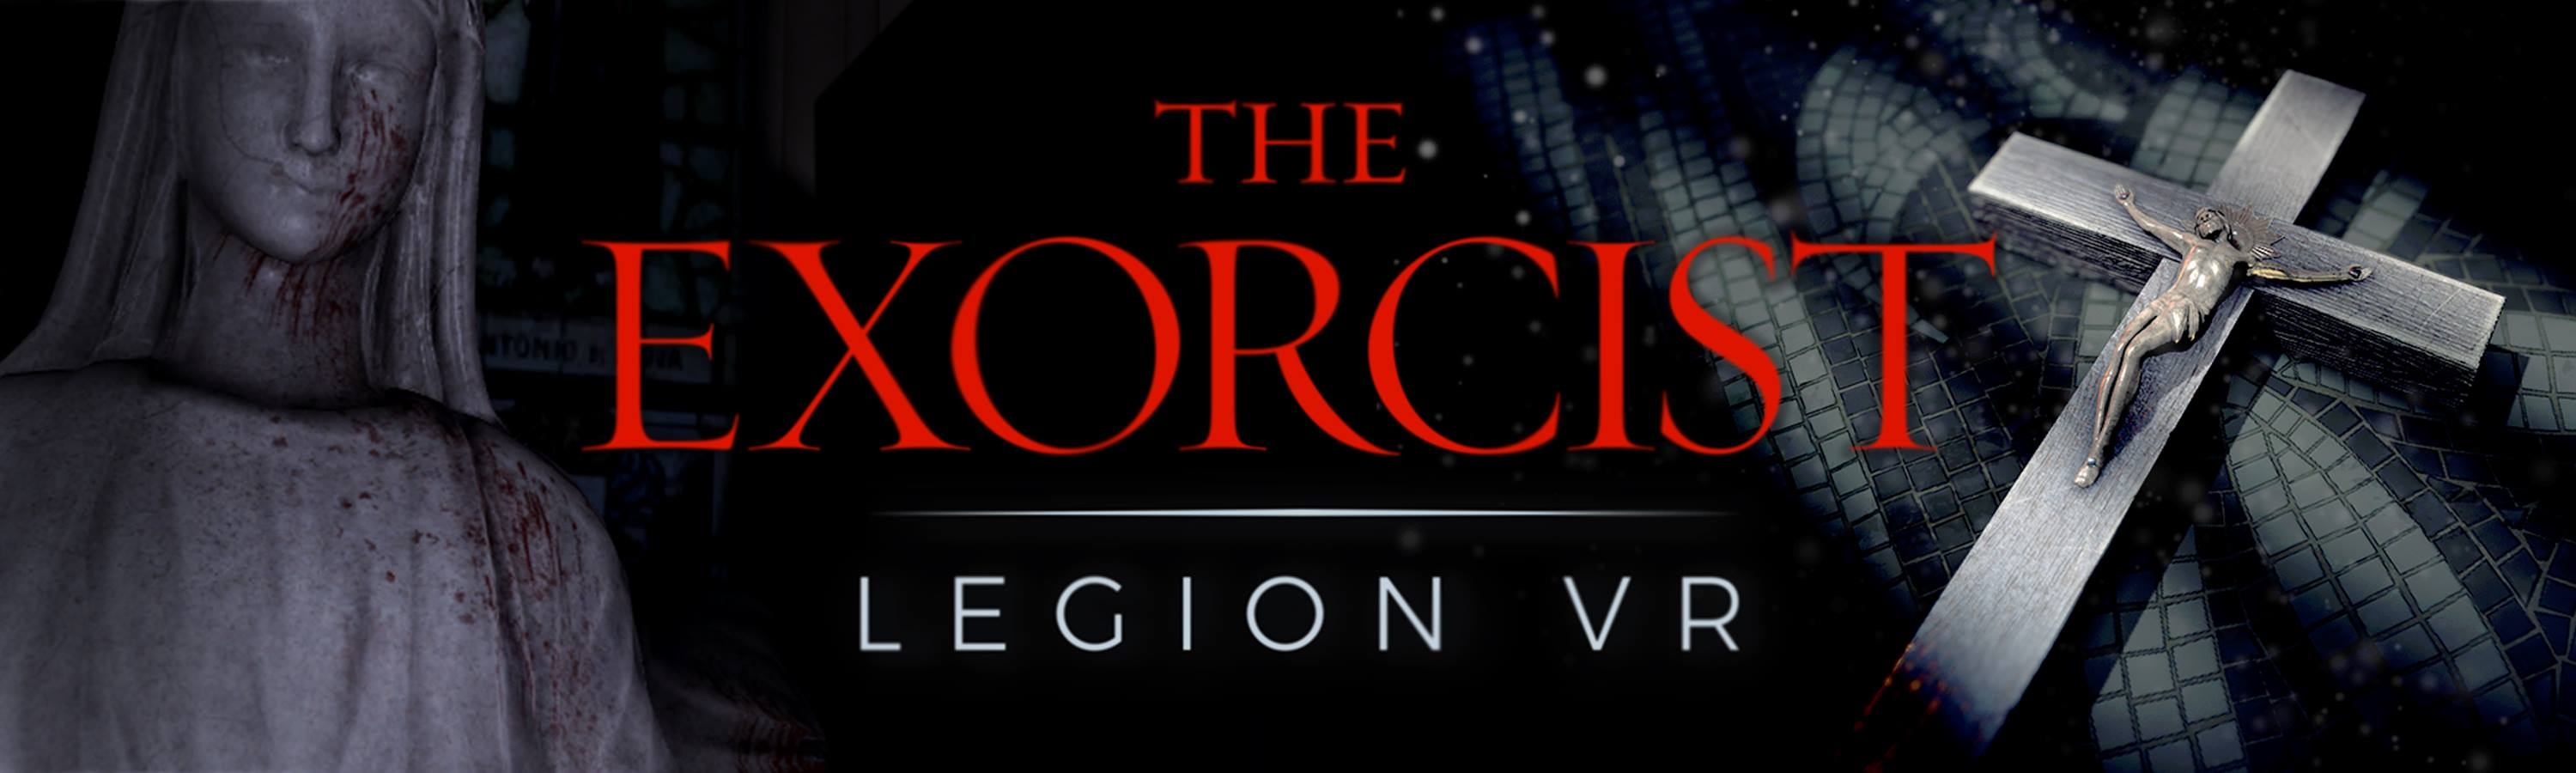 exorcist legion vr - The Exorcist: Legion VR to Compel You This Fall